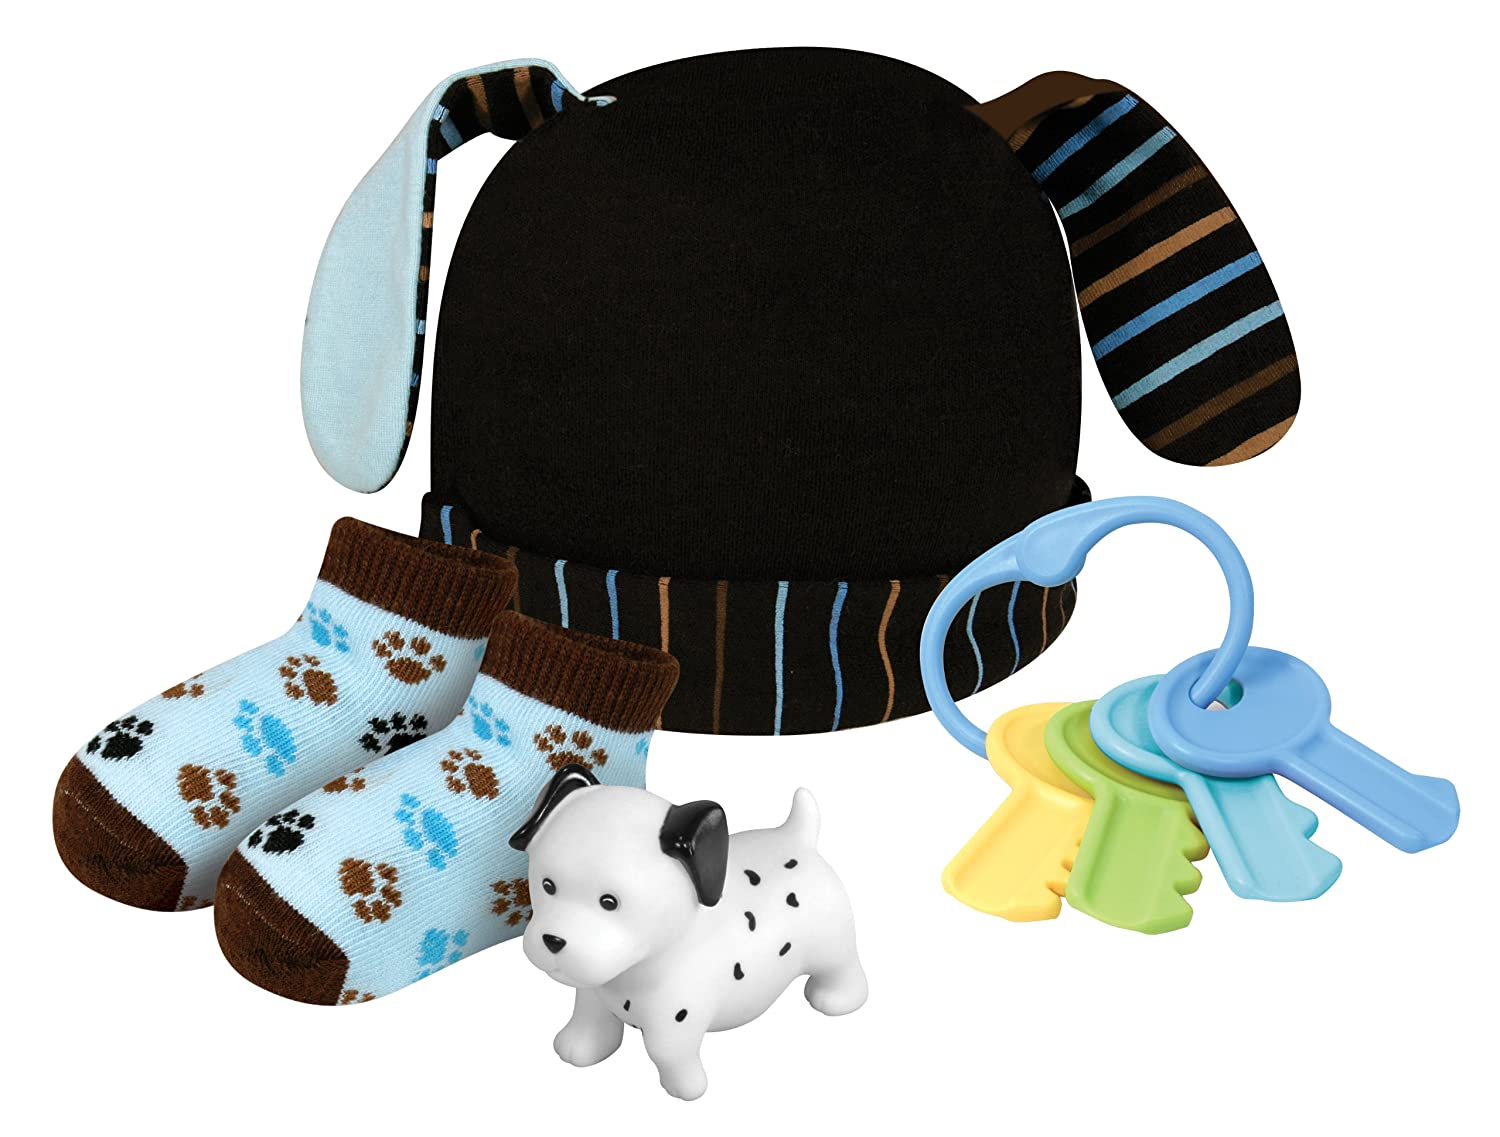 Stephan Baby Bootie Socks, Key Rattle, Bath Squirter and Floppy-Eared Cap Gift Set, Blue Dog, 0-6 Months 602413